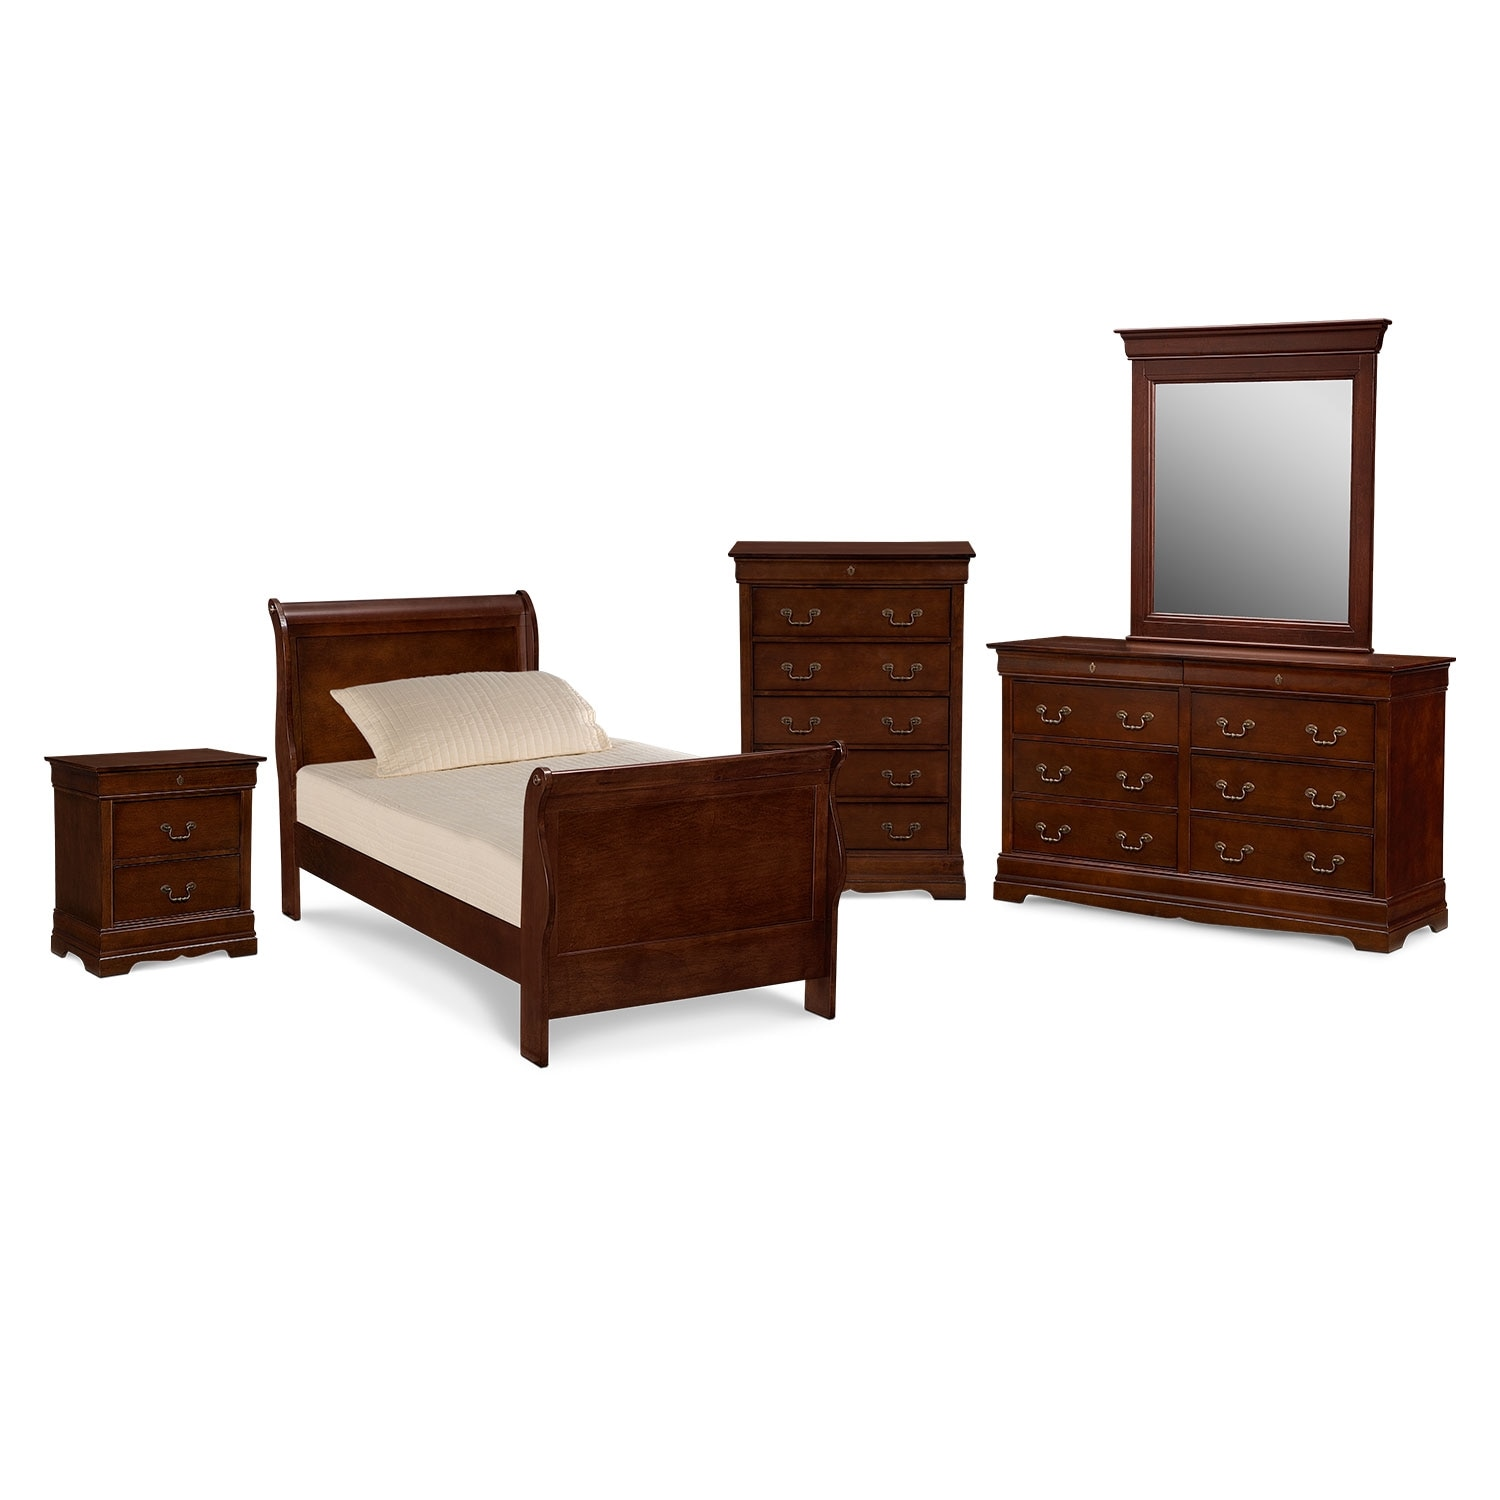 Kids Furniture   Neo Classic Youth 7 Piece Full Bedroom Set   Cherry